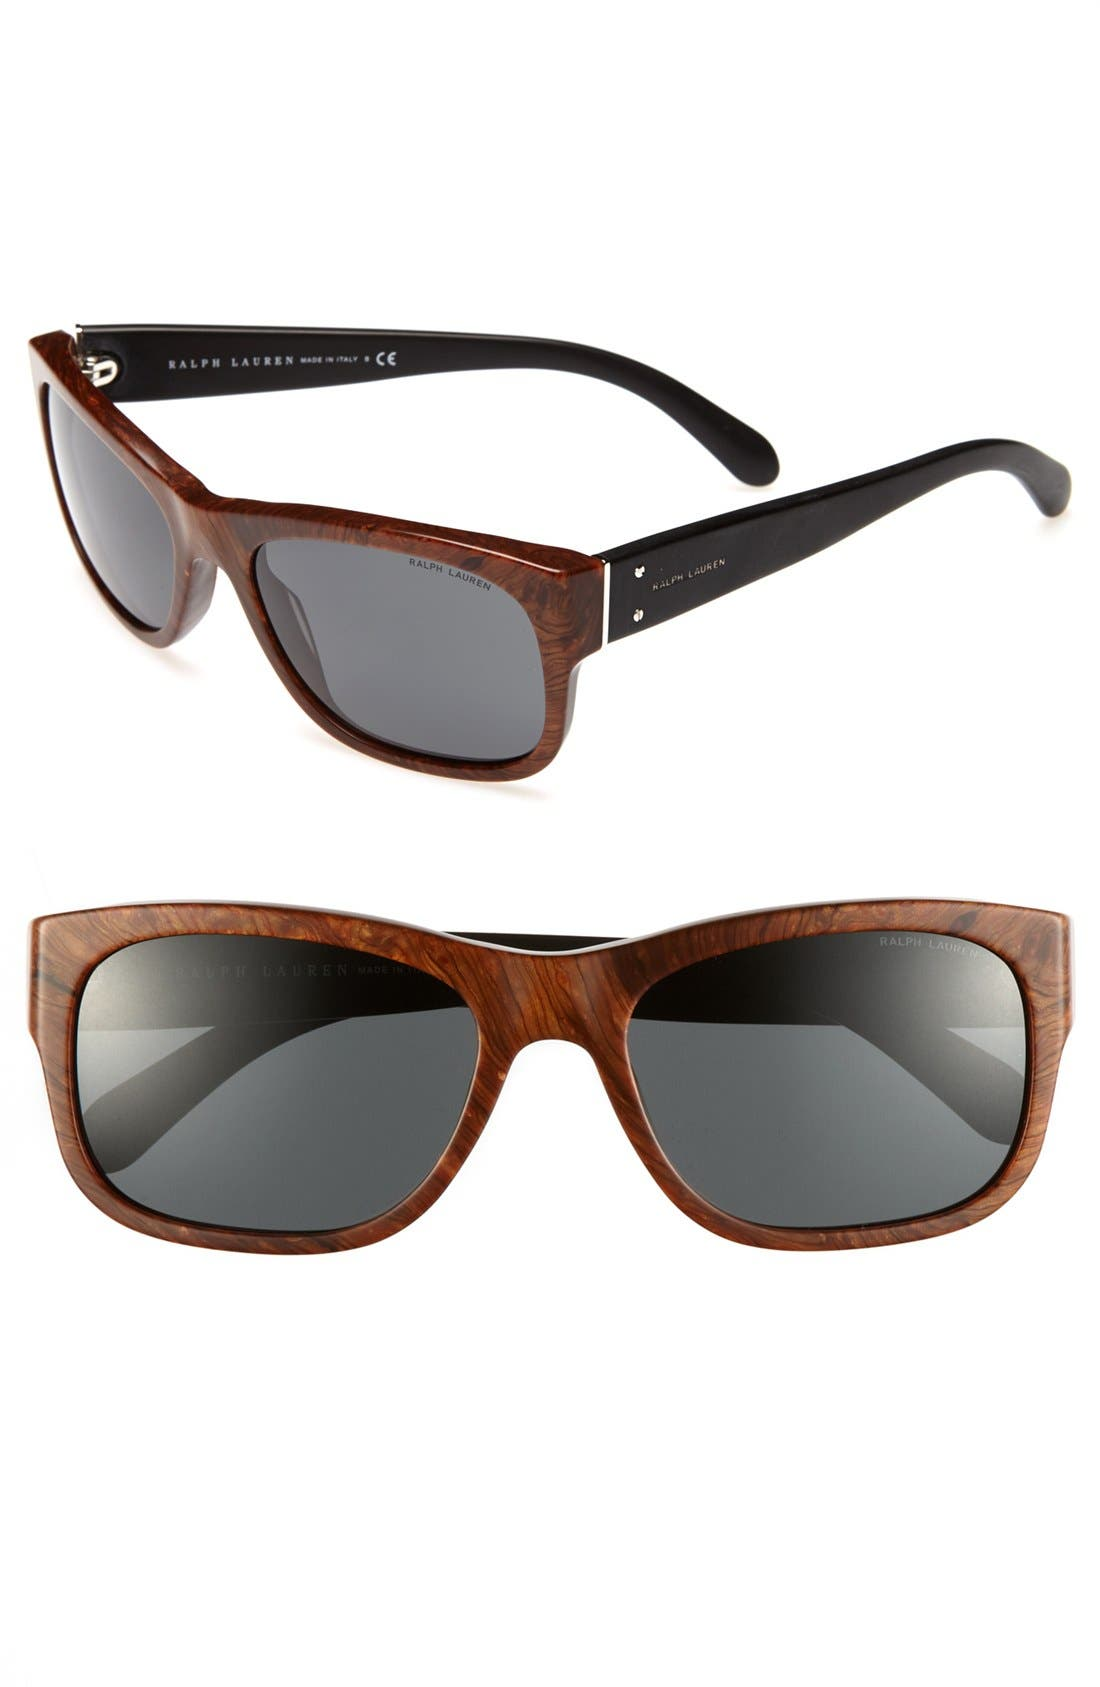 Main Image - Polo Ralph Lauren 57mm Sunglasses